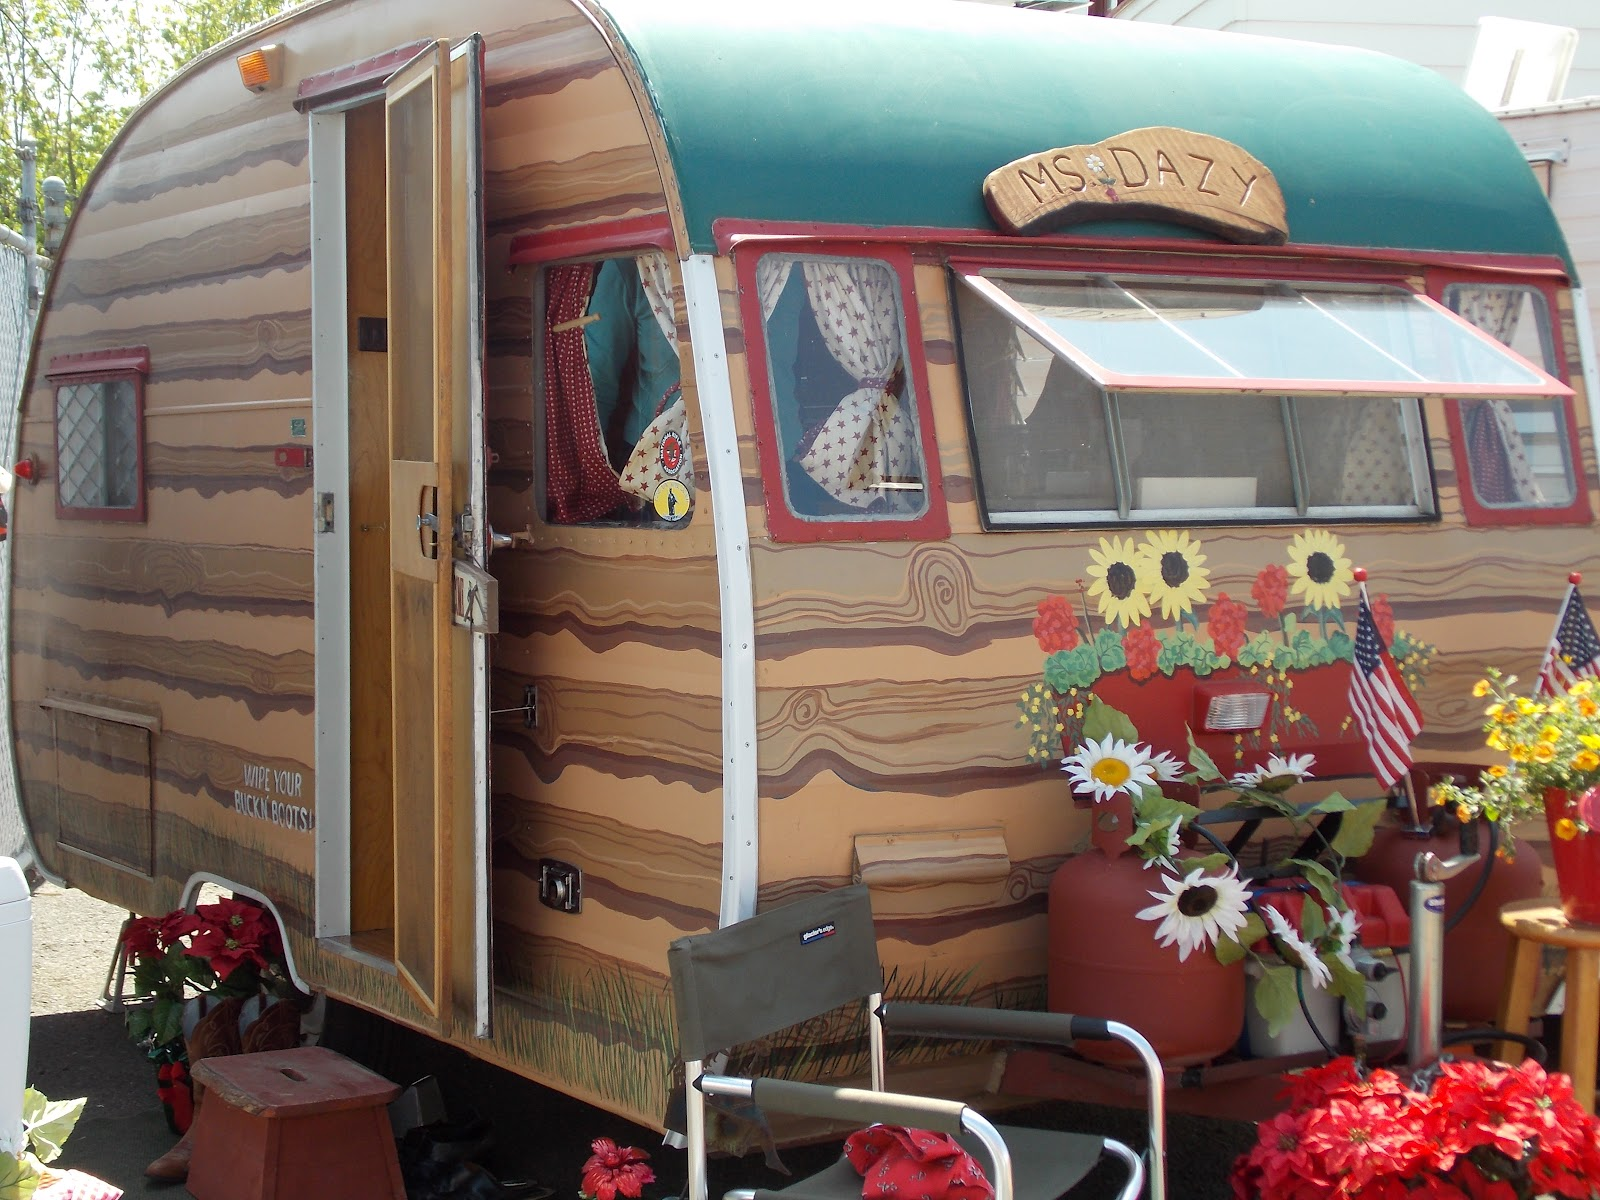 Vintage travel trailers naked girls consider, that